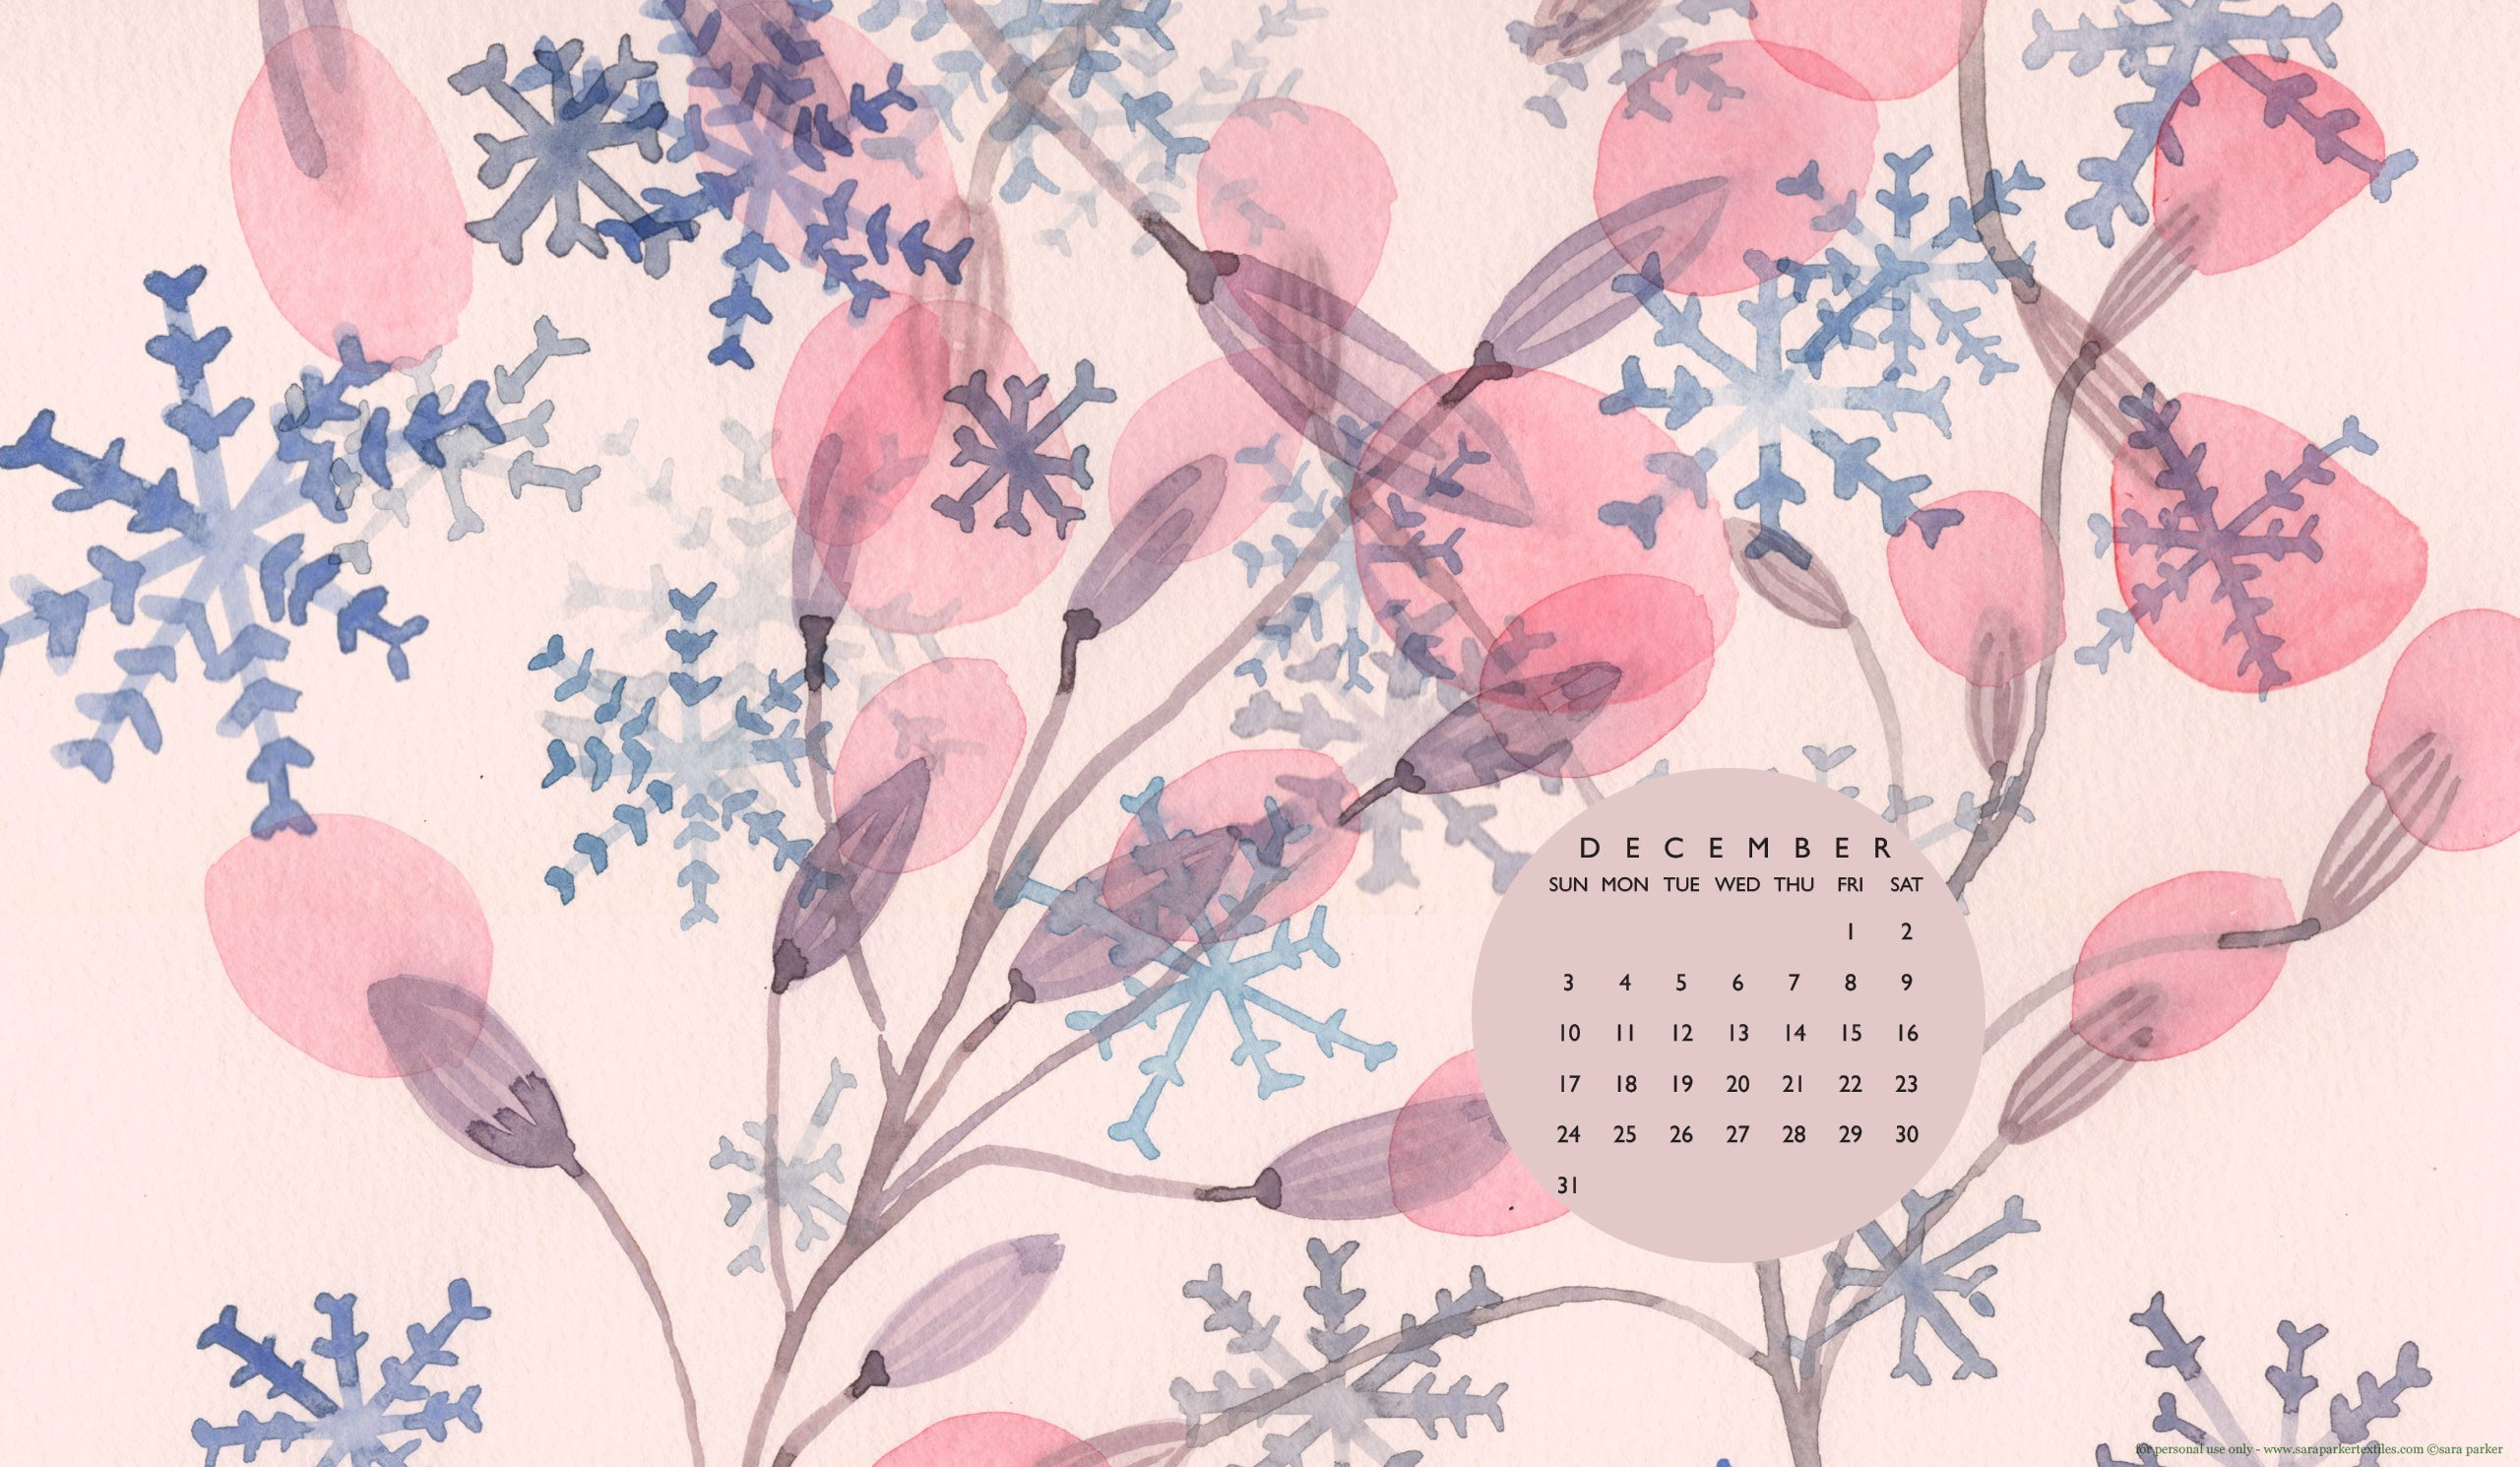 Sugarplums and snowdrops! Free desktop calendar wallpaper for download by Sara Parker.